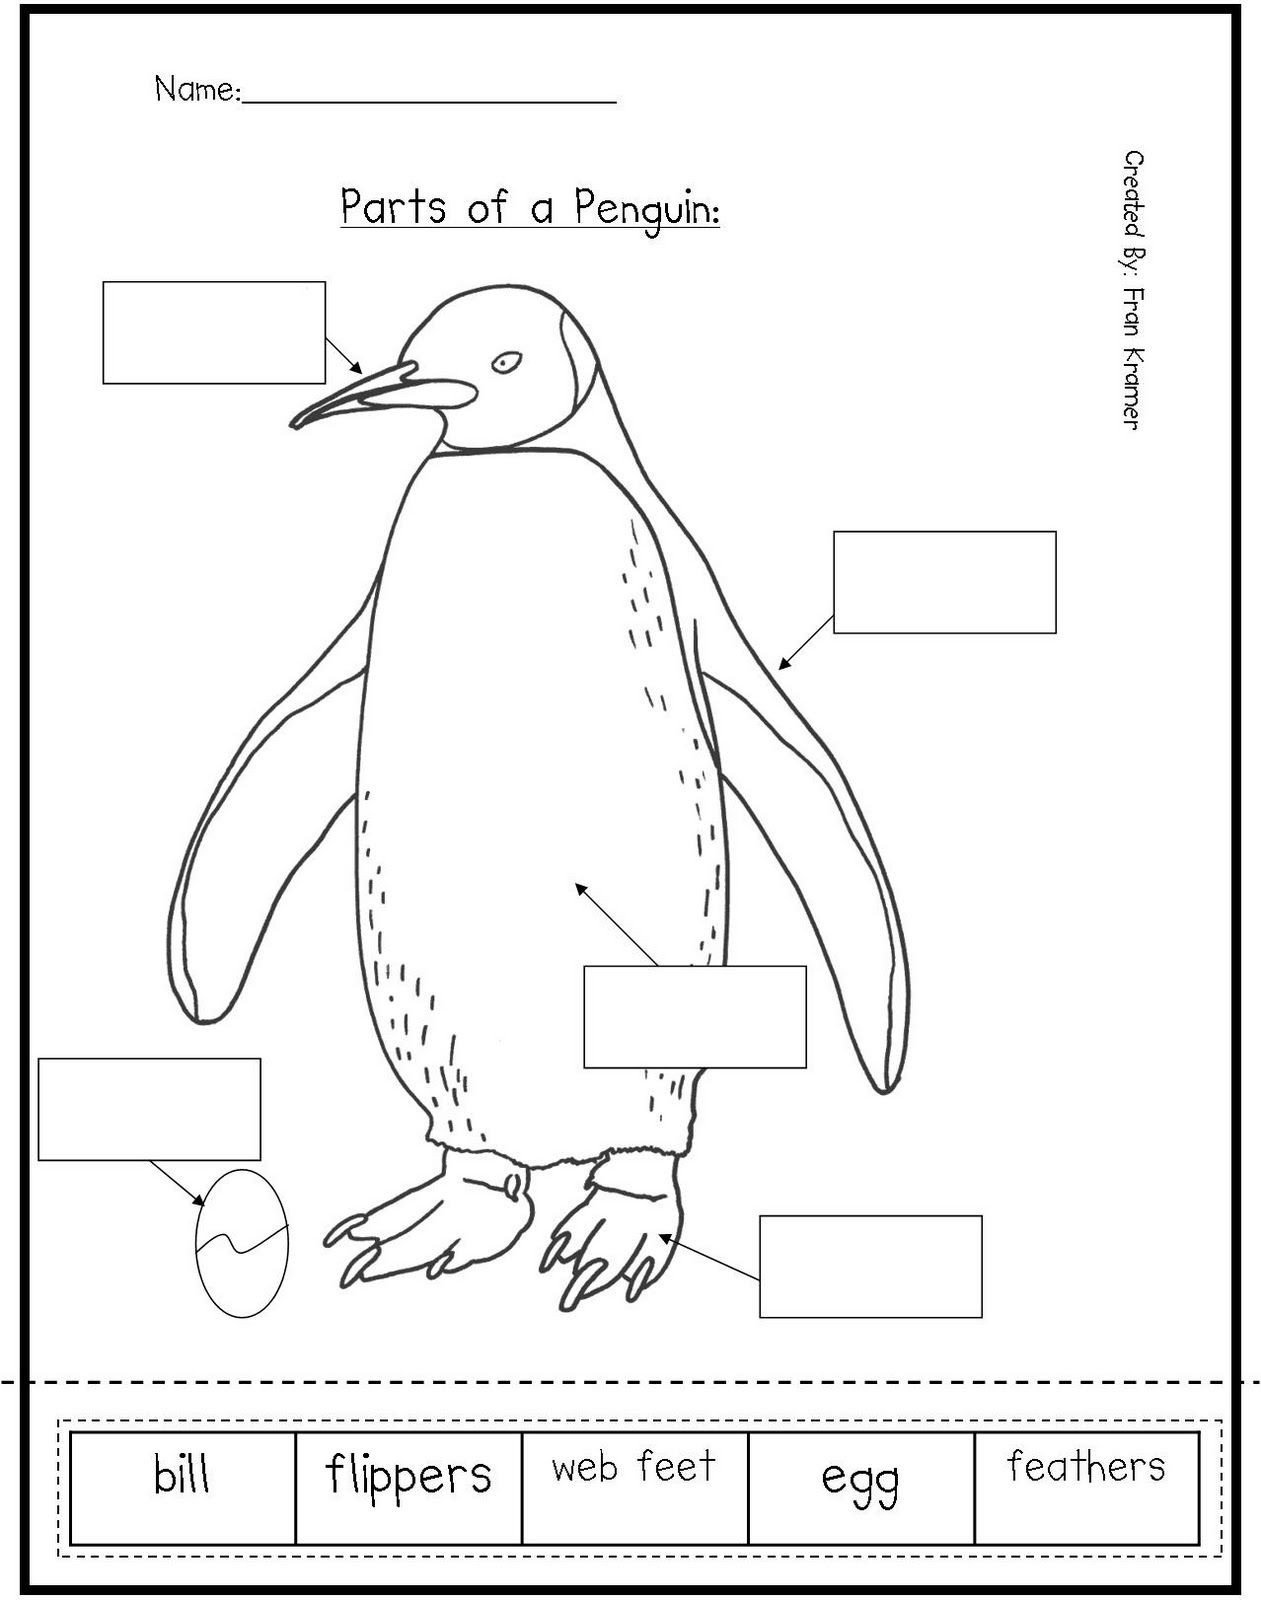 Penguin Worksheets for Kindergarten Penguin Worksheets for Preschool